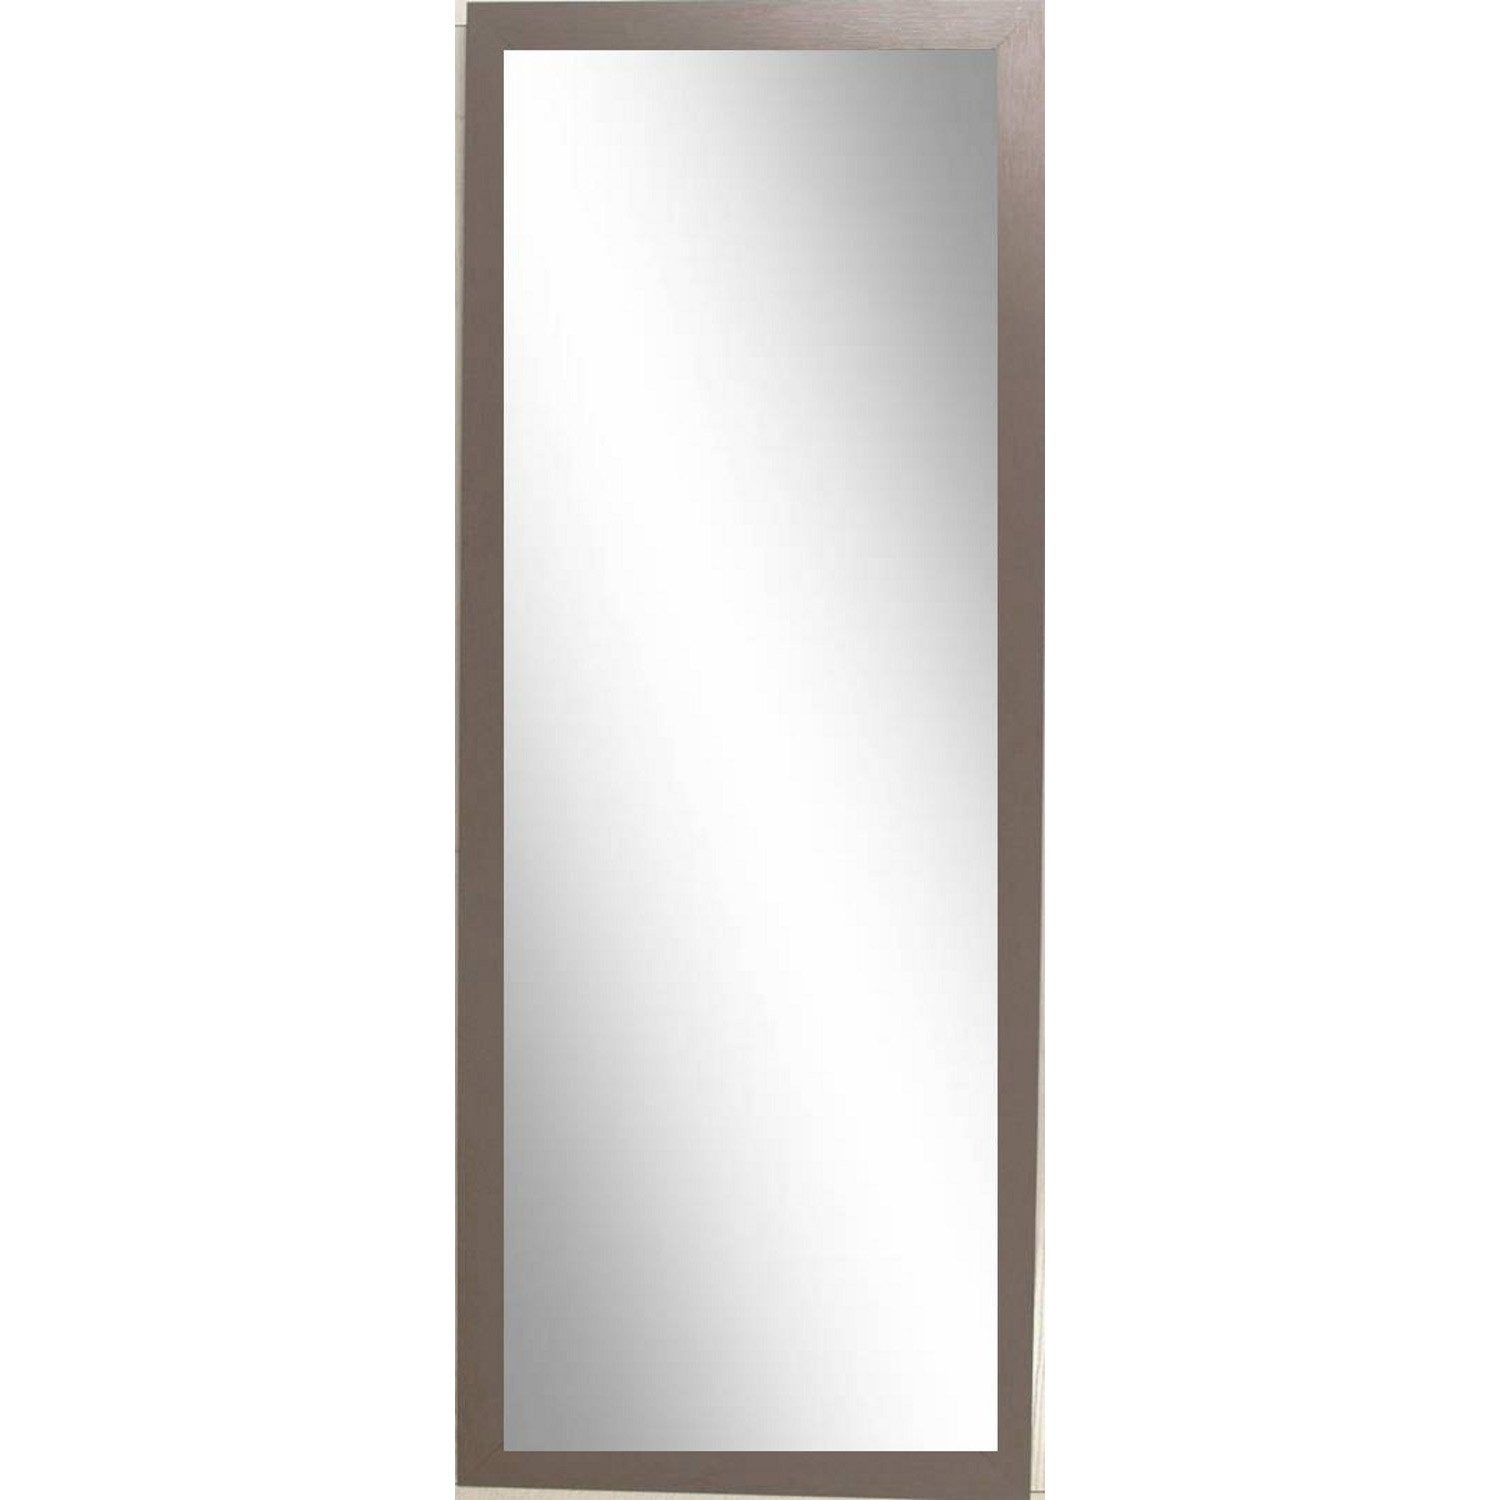 Image gallery miroir for Miroir 30 cm largeur